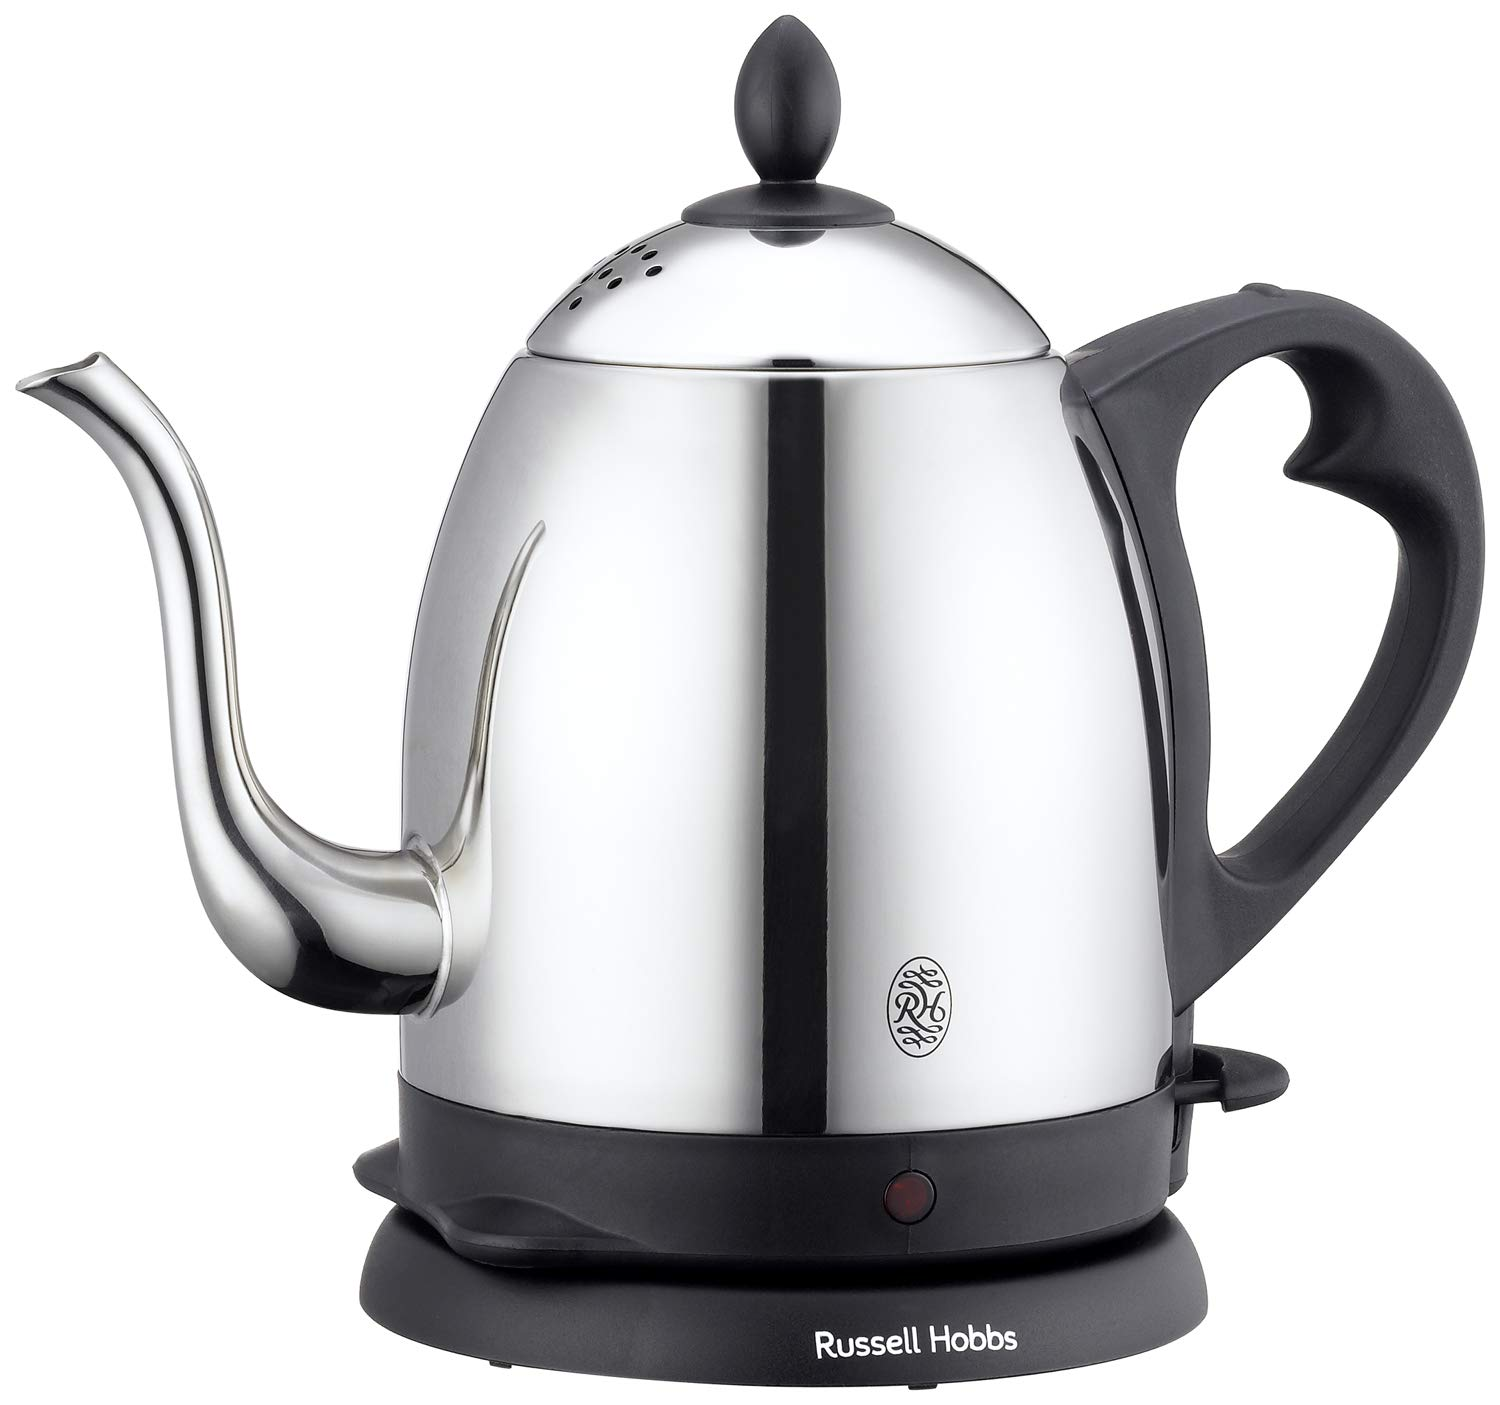 Russell Hobbs Electric Cafe Kettle 0.8L 7408JP